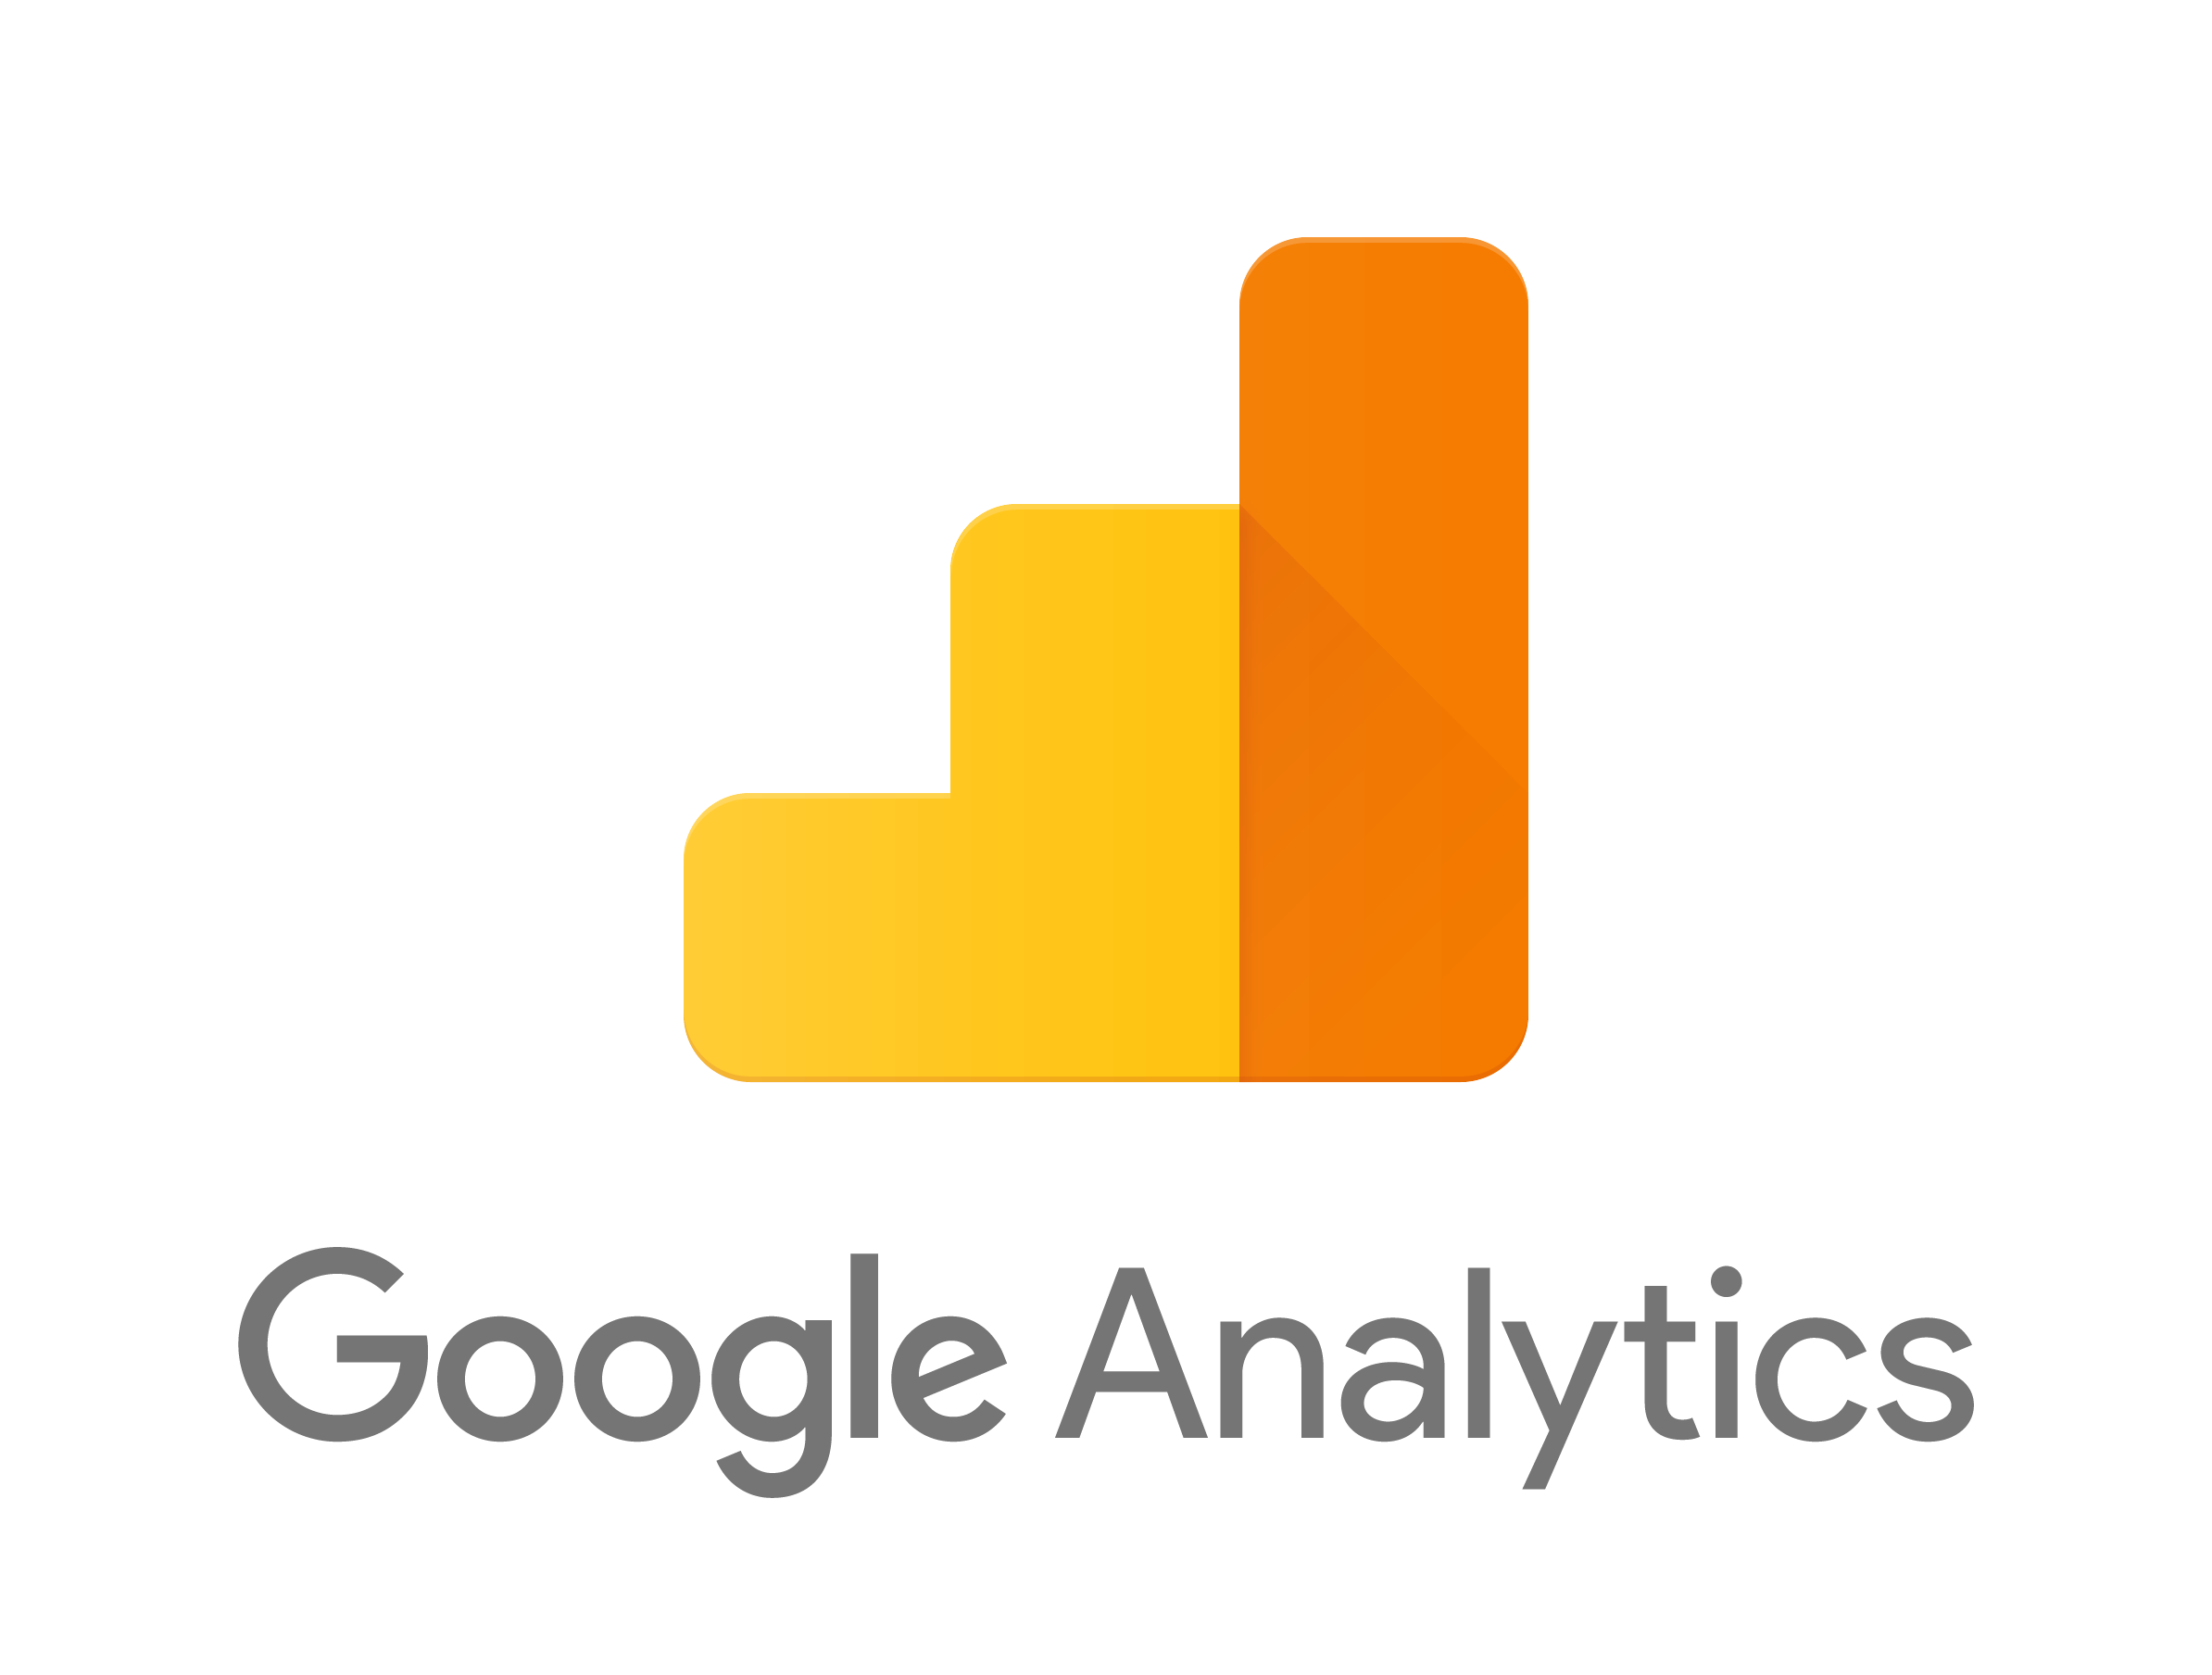 Google Analytics logo 2020 - Carlos David López